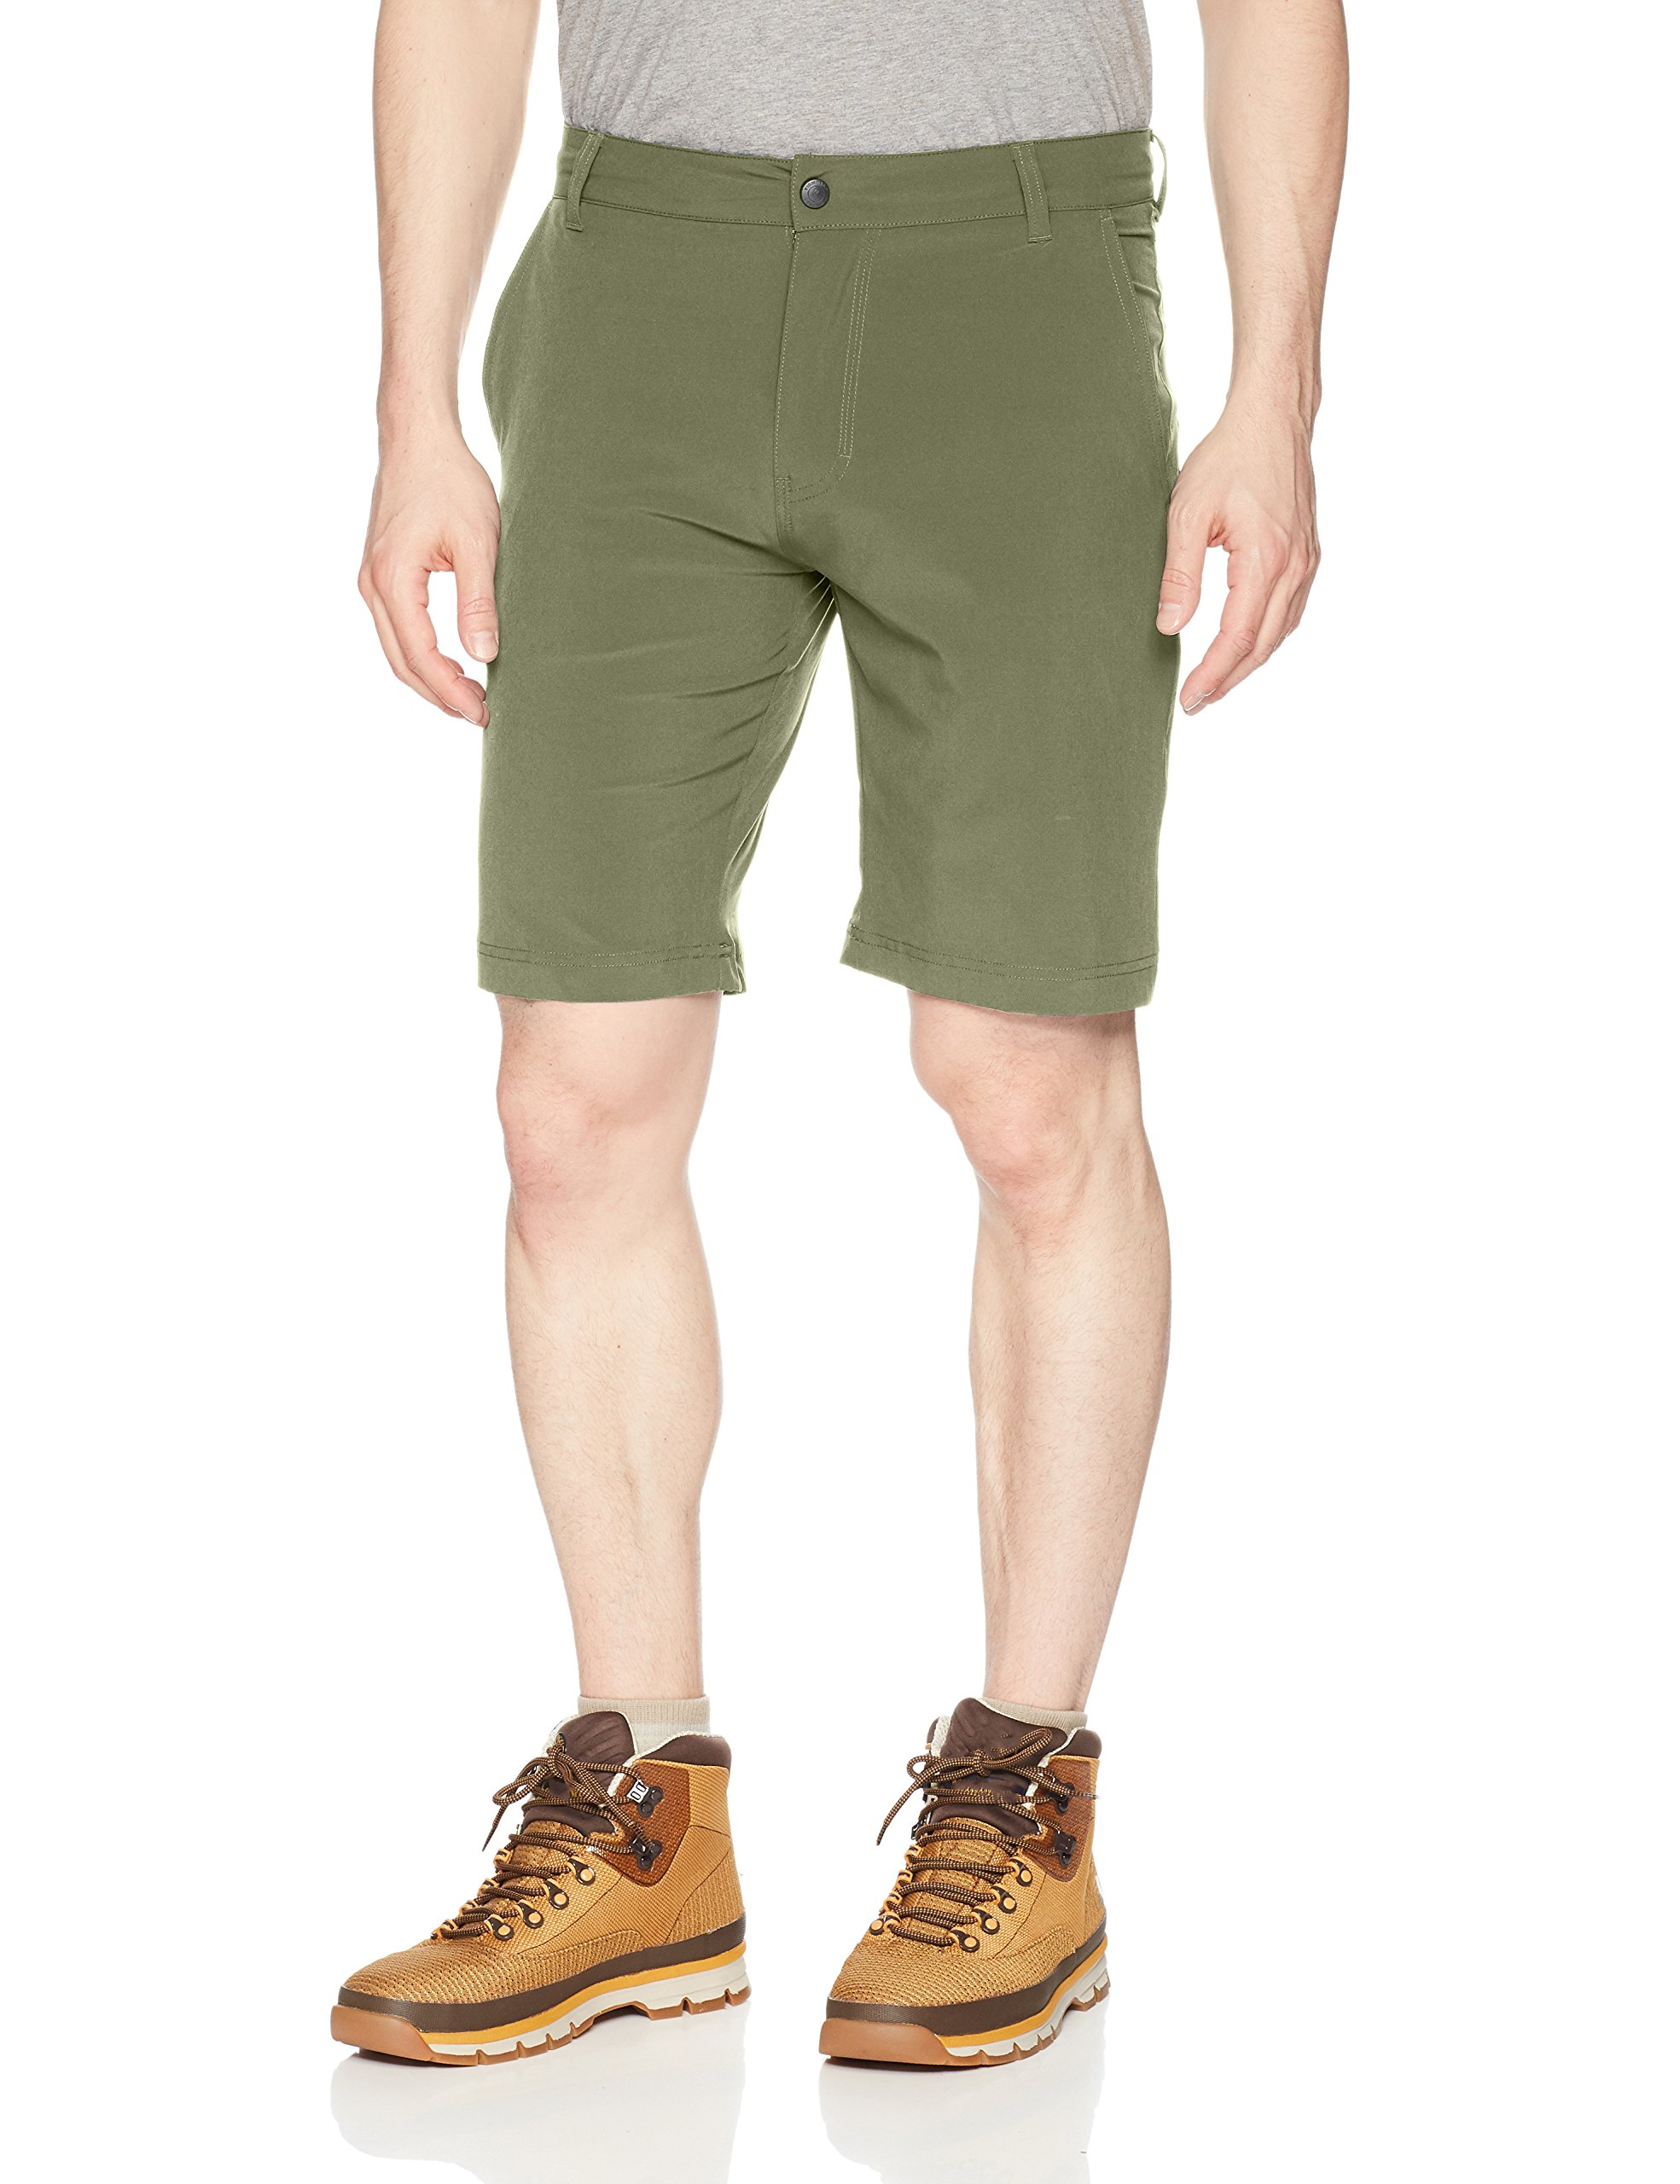 Columbia Men's Hybrid Trek Shorts, Moss Tone, 34 x 8